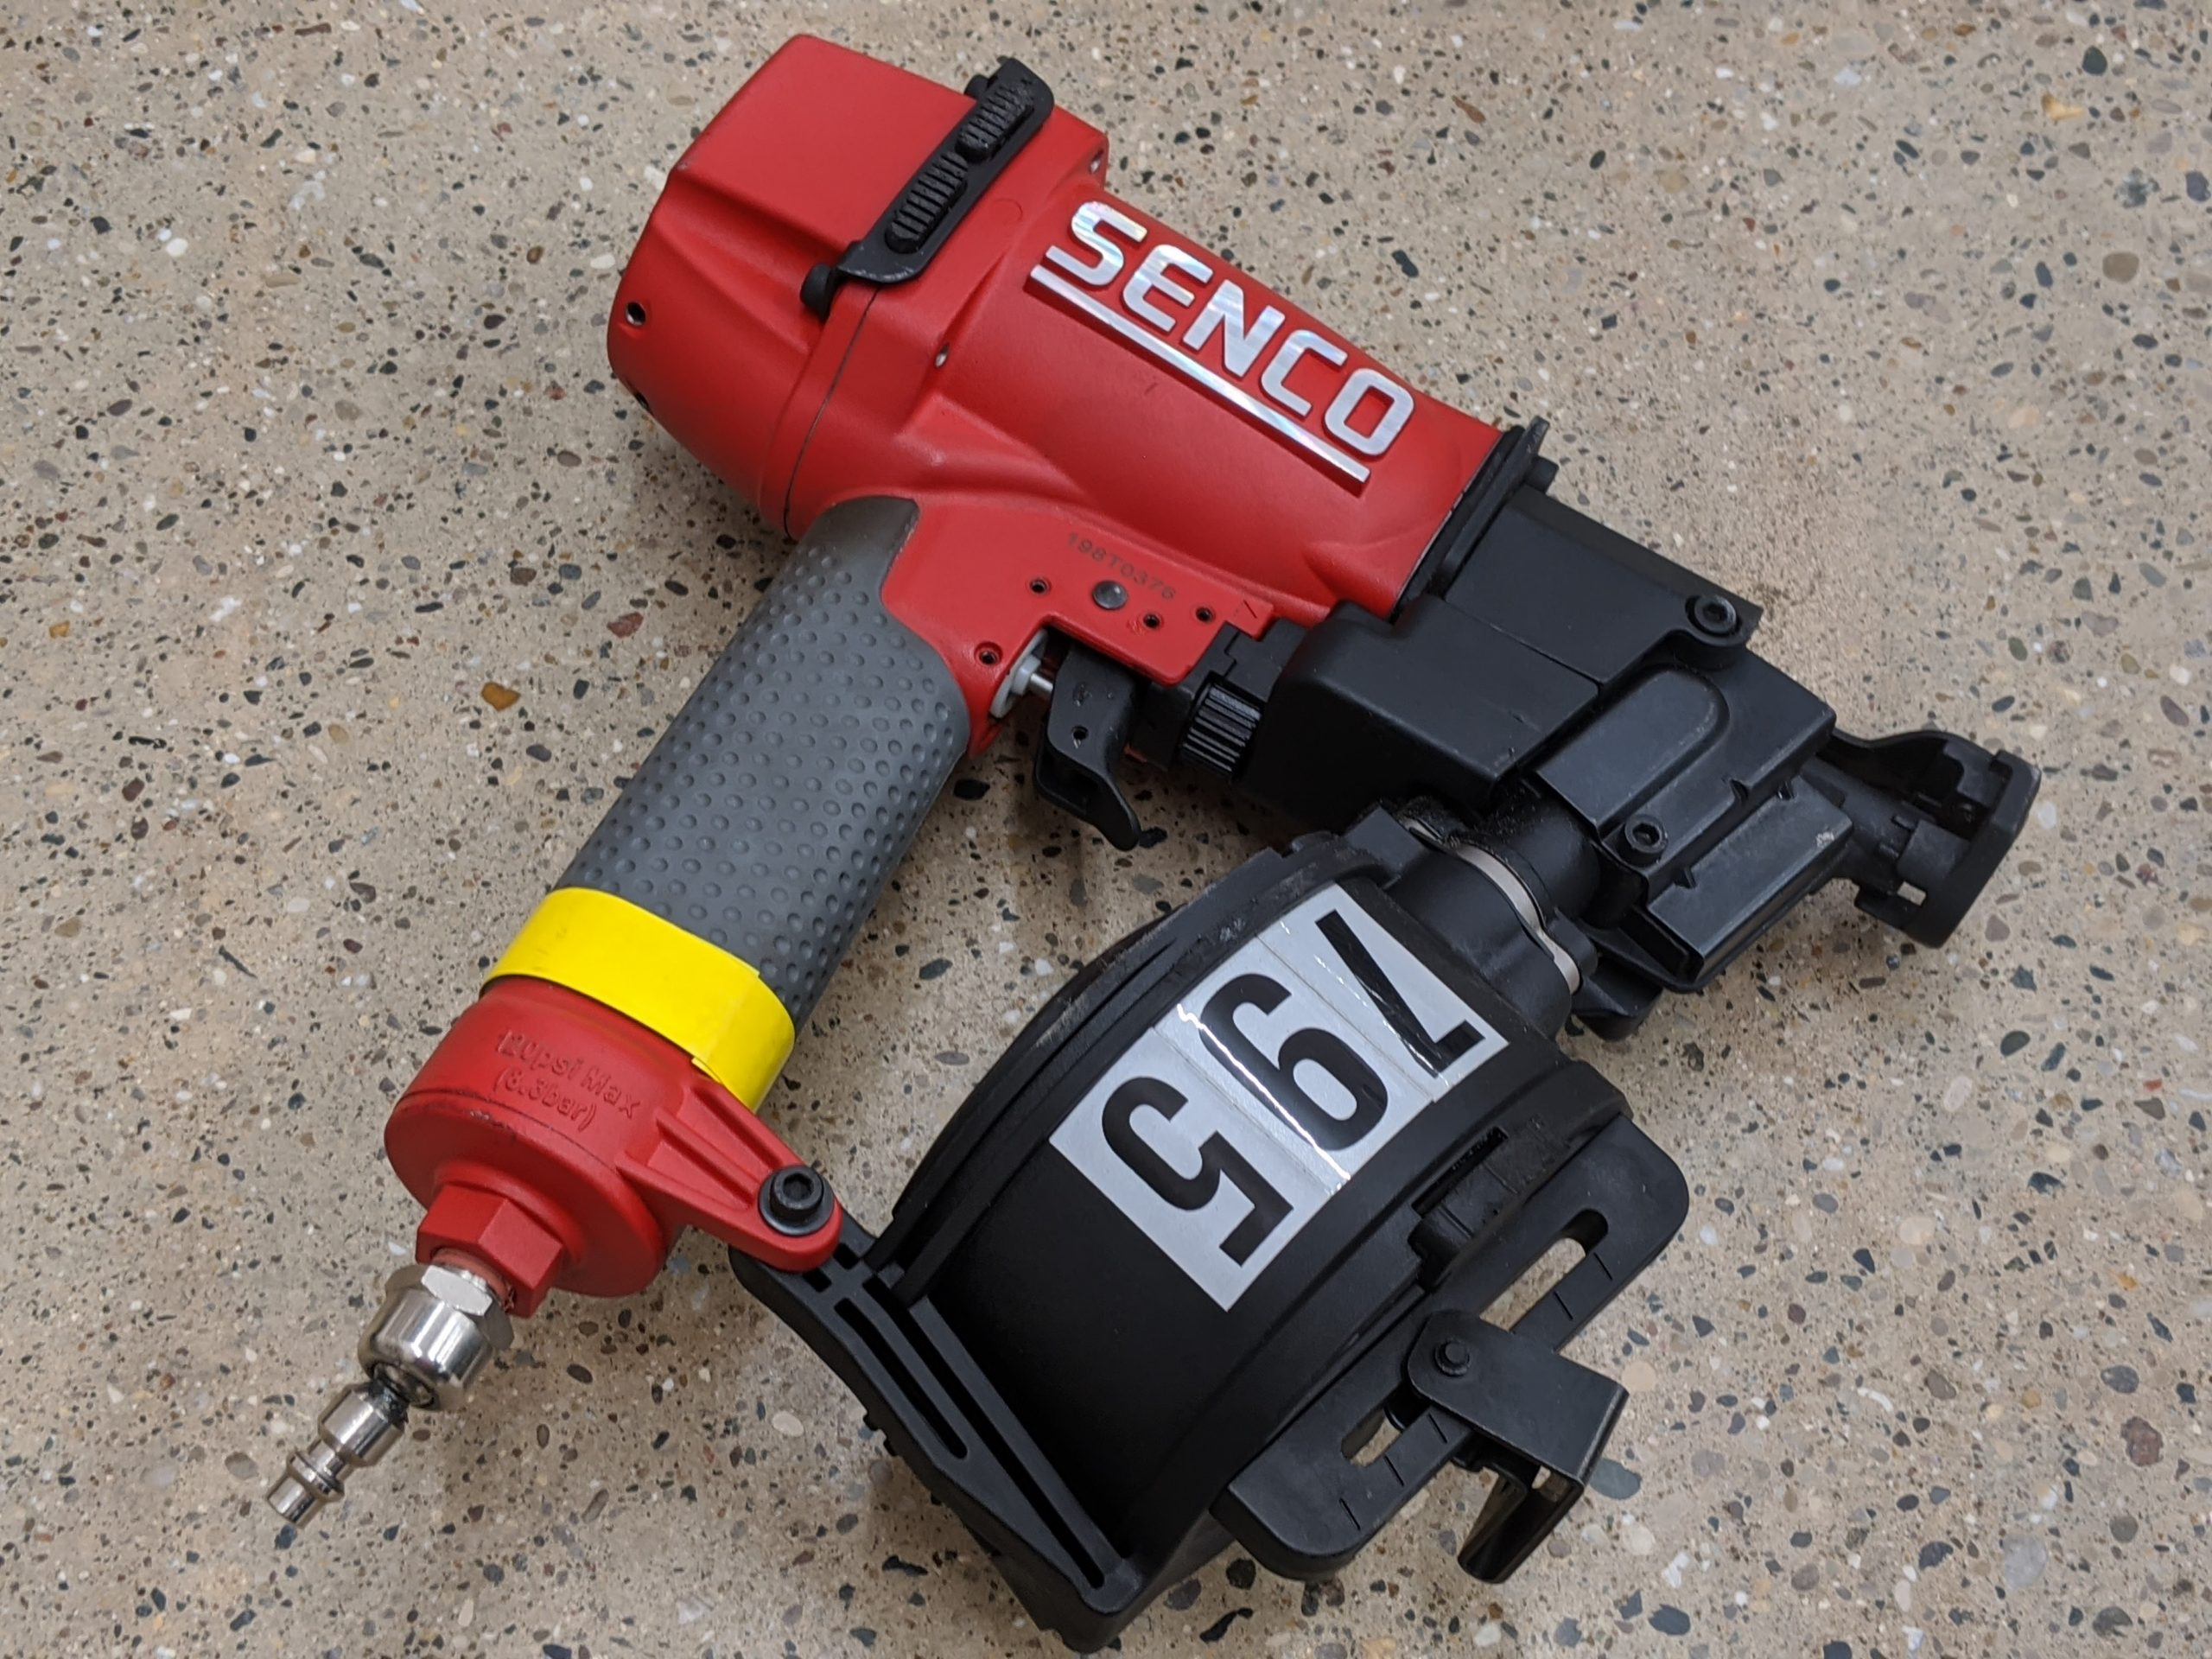 nailer-roofing-scn40r